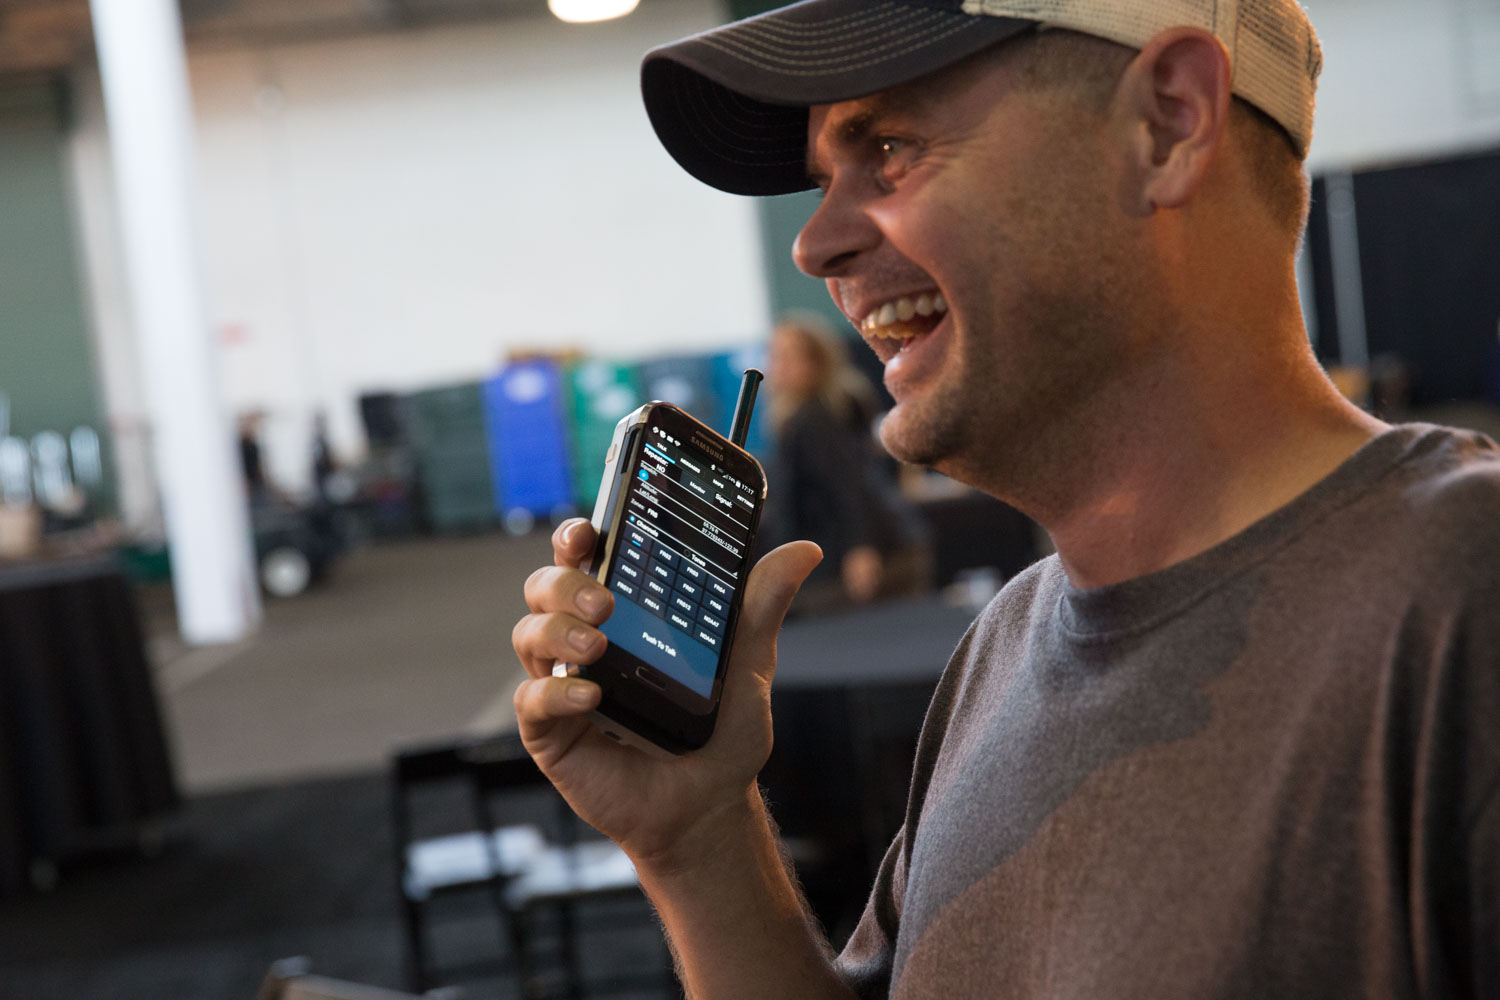 Turn Your Smartphone into a Powerful Walkie Talkie